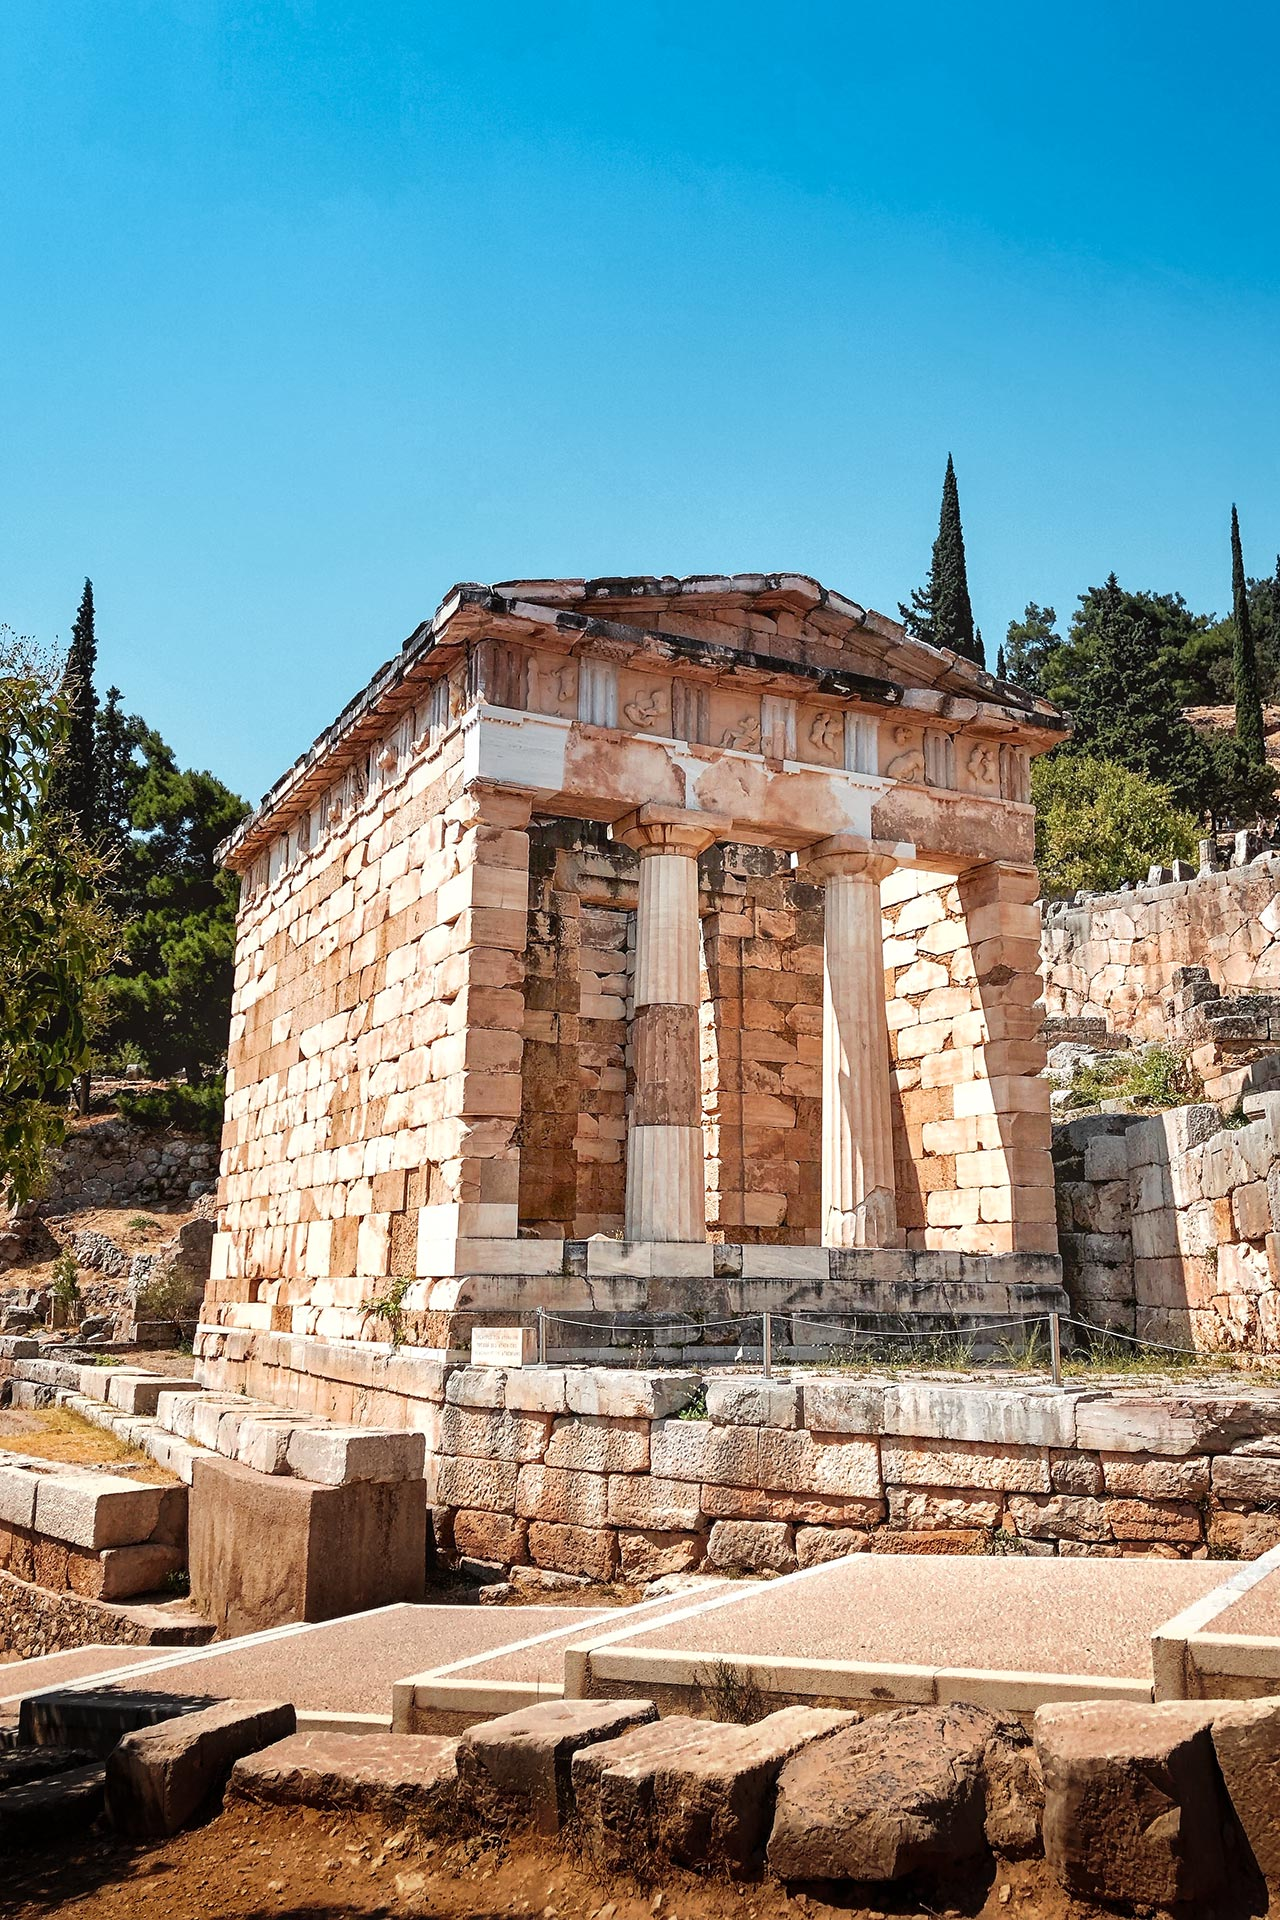 The Athenian treasury. The best preserved of the treasuries containing the monuments and gifts of victorious city states